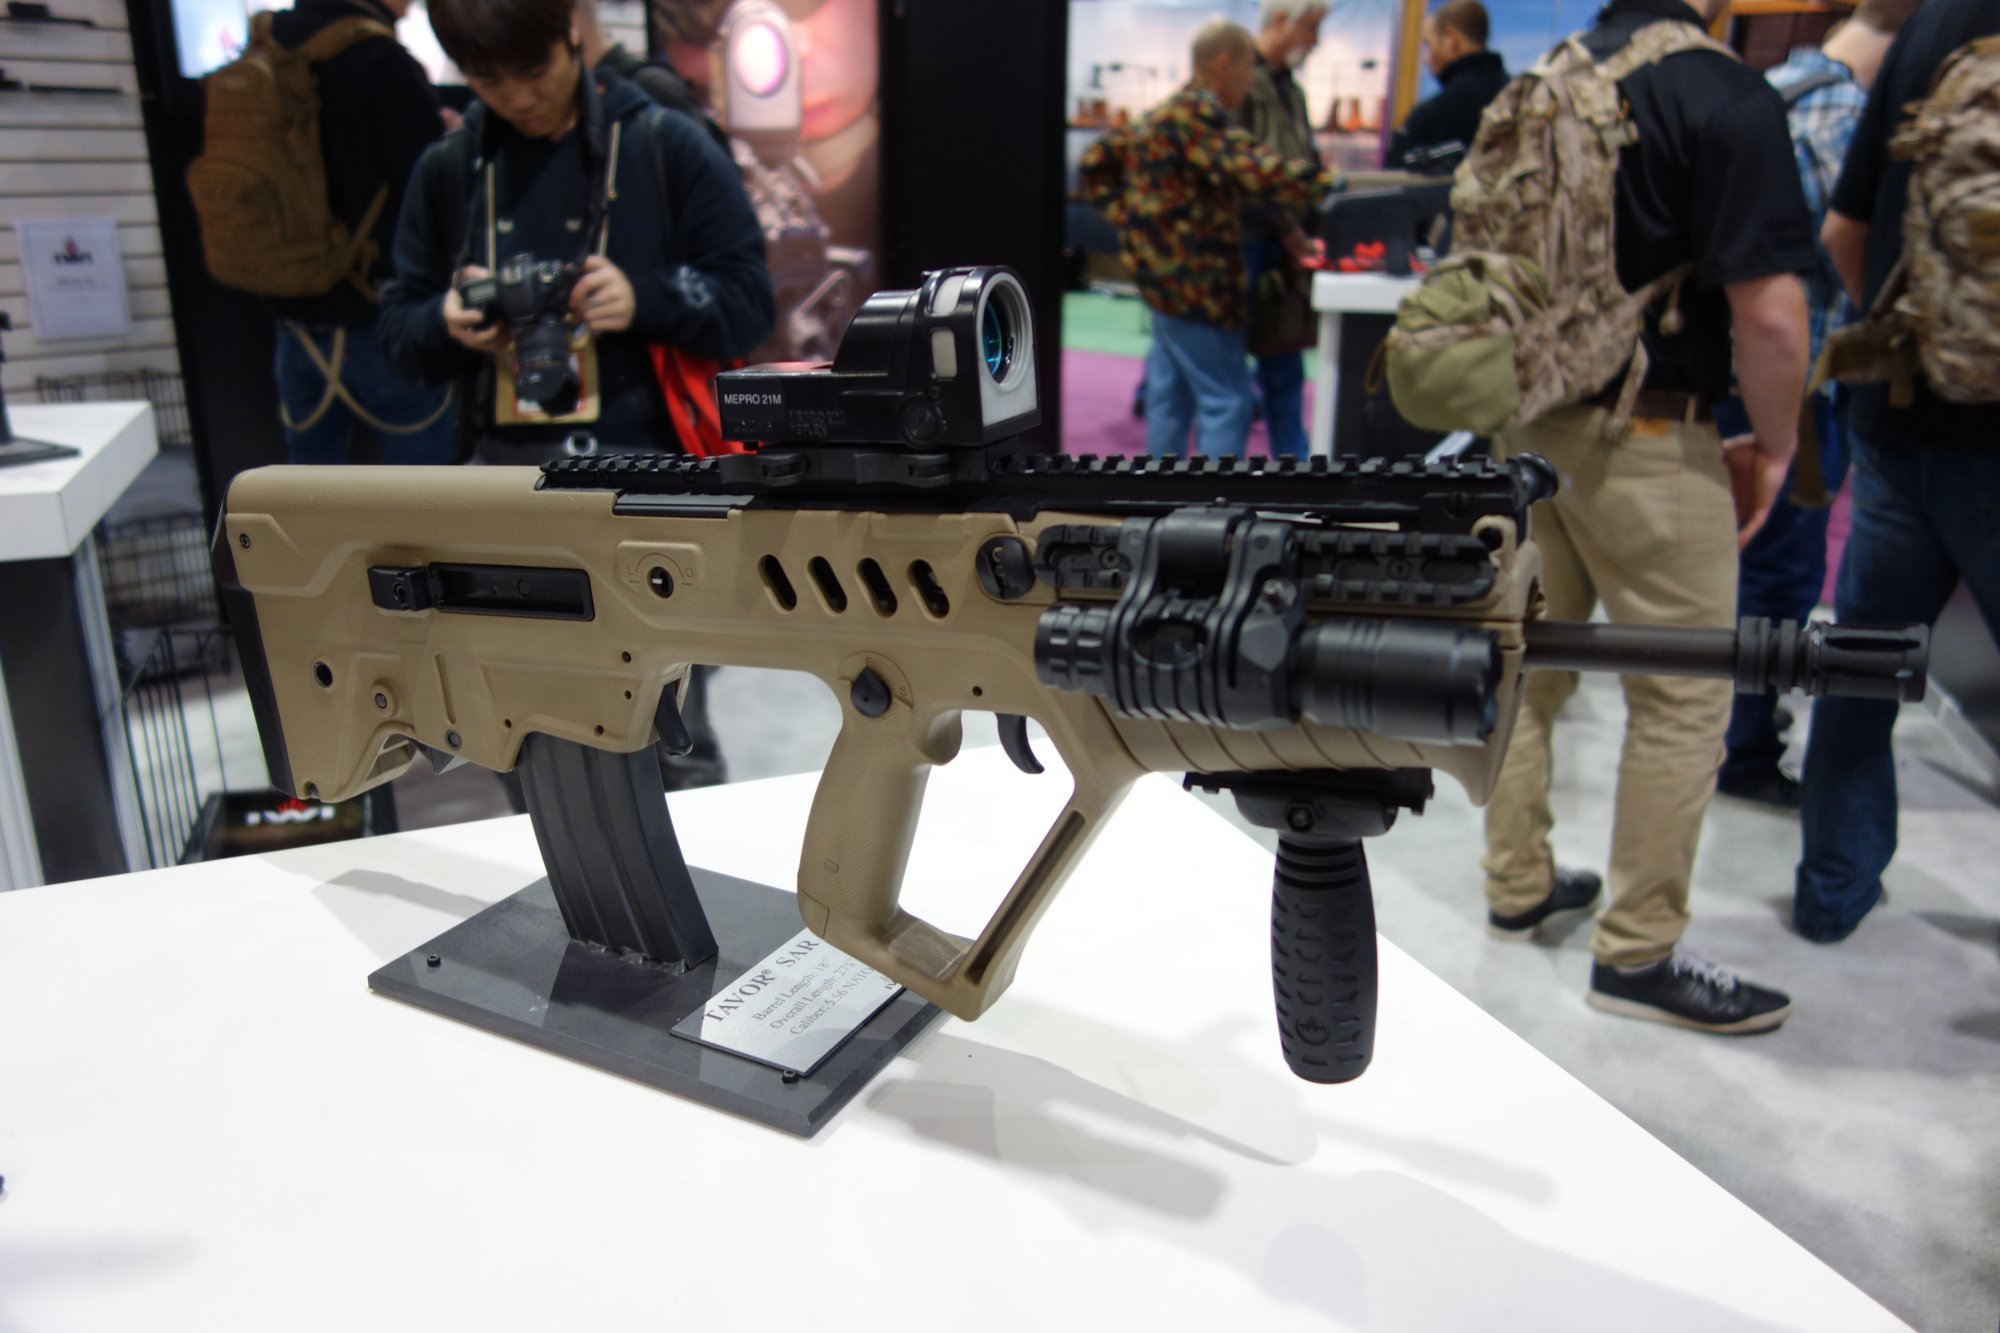 Israel Weapon Industries IWI Tavor SAR Semi Auto Only Tactical Carbine Rifle IWI Tavor TAR 21 Assault Rifle Carbine SHOT Show 2013 David Crane DefenseReview.com DR 21 Israel Weapon Industries IWI TAVOR SAR Bullpup 5.56mm Tactical Carbine/Rifle Series: IWI TAR 21 Goes Semi Auto Only, Civilian Legal and into US Production! (Video!)